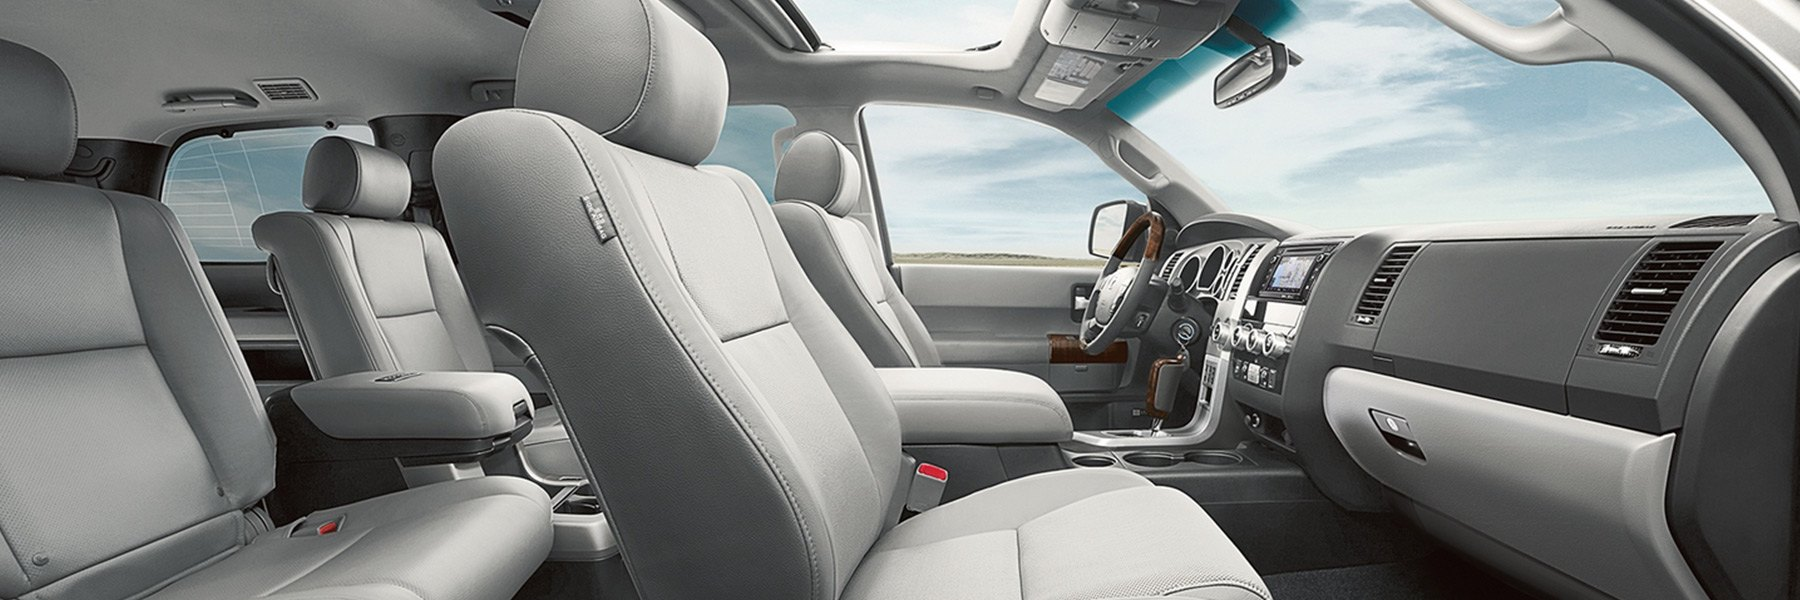 Sequoia-interior